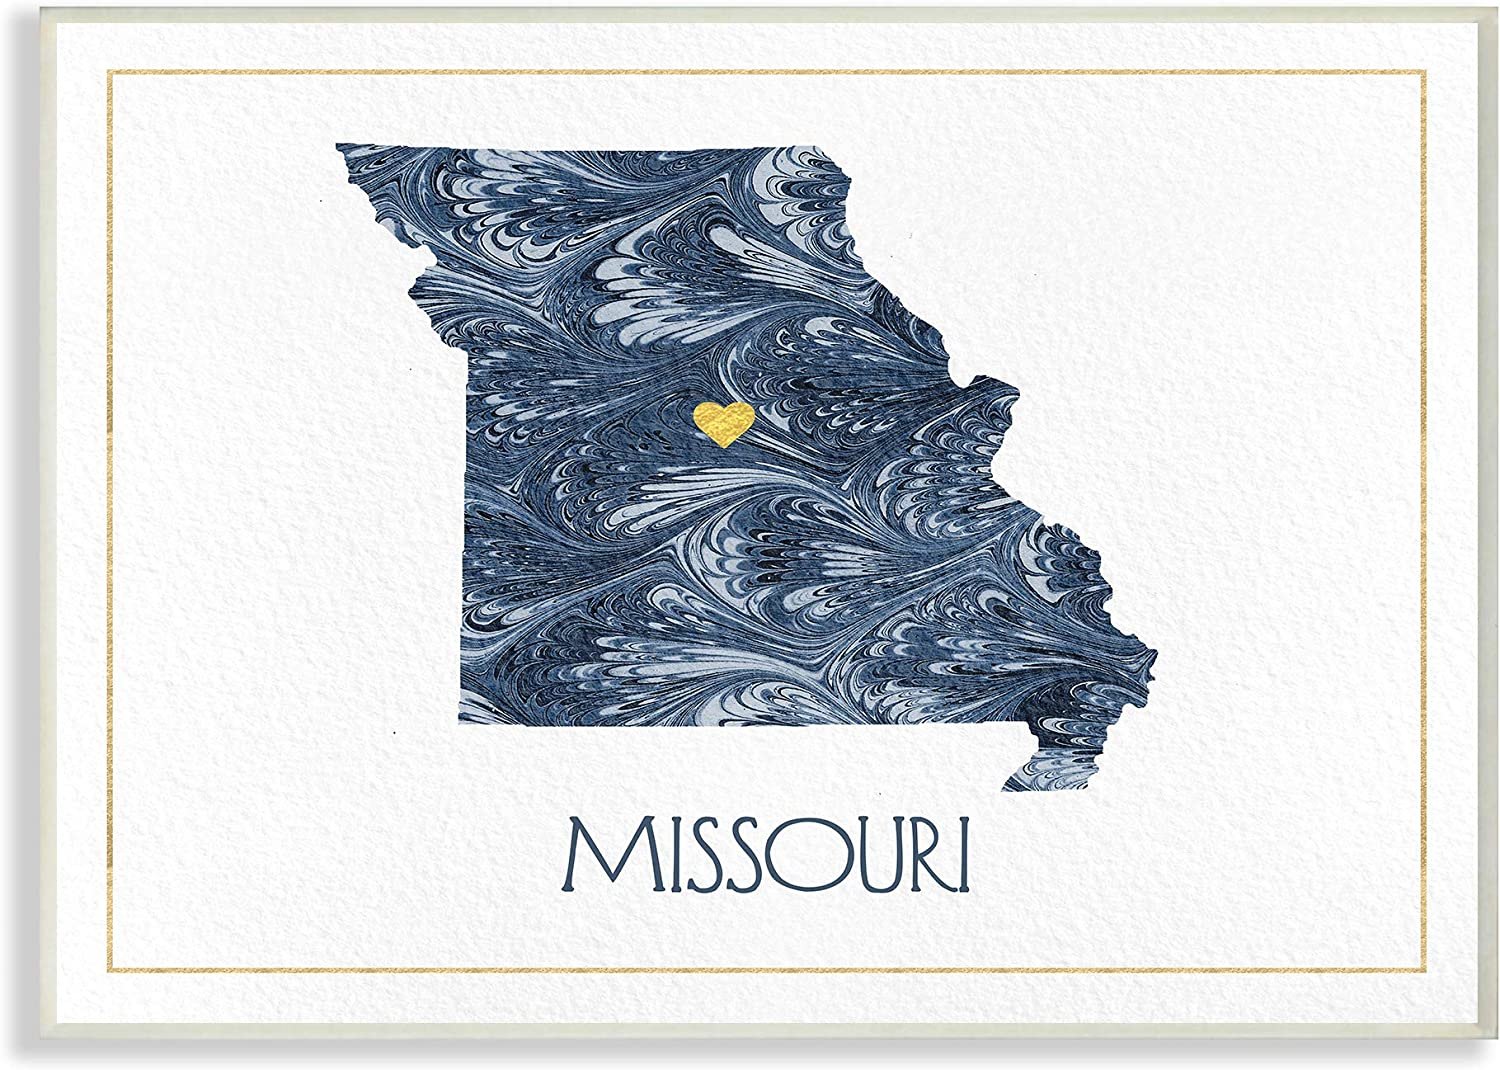 The Stupell Home Decor Missouri Minimal bluee Marbled Paper Silhouette Wall Plaque Art, 13 X 19 Multi-color